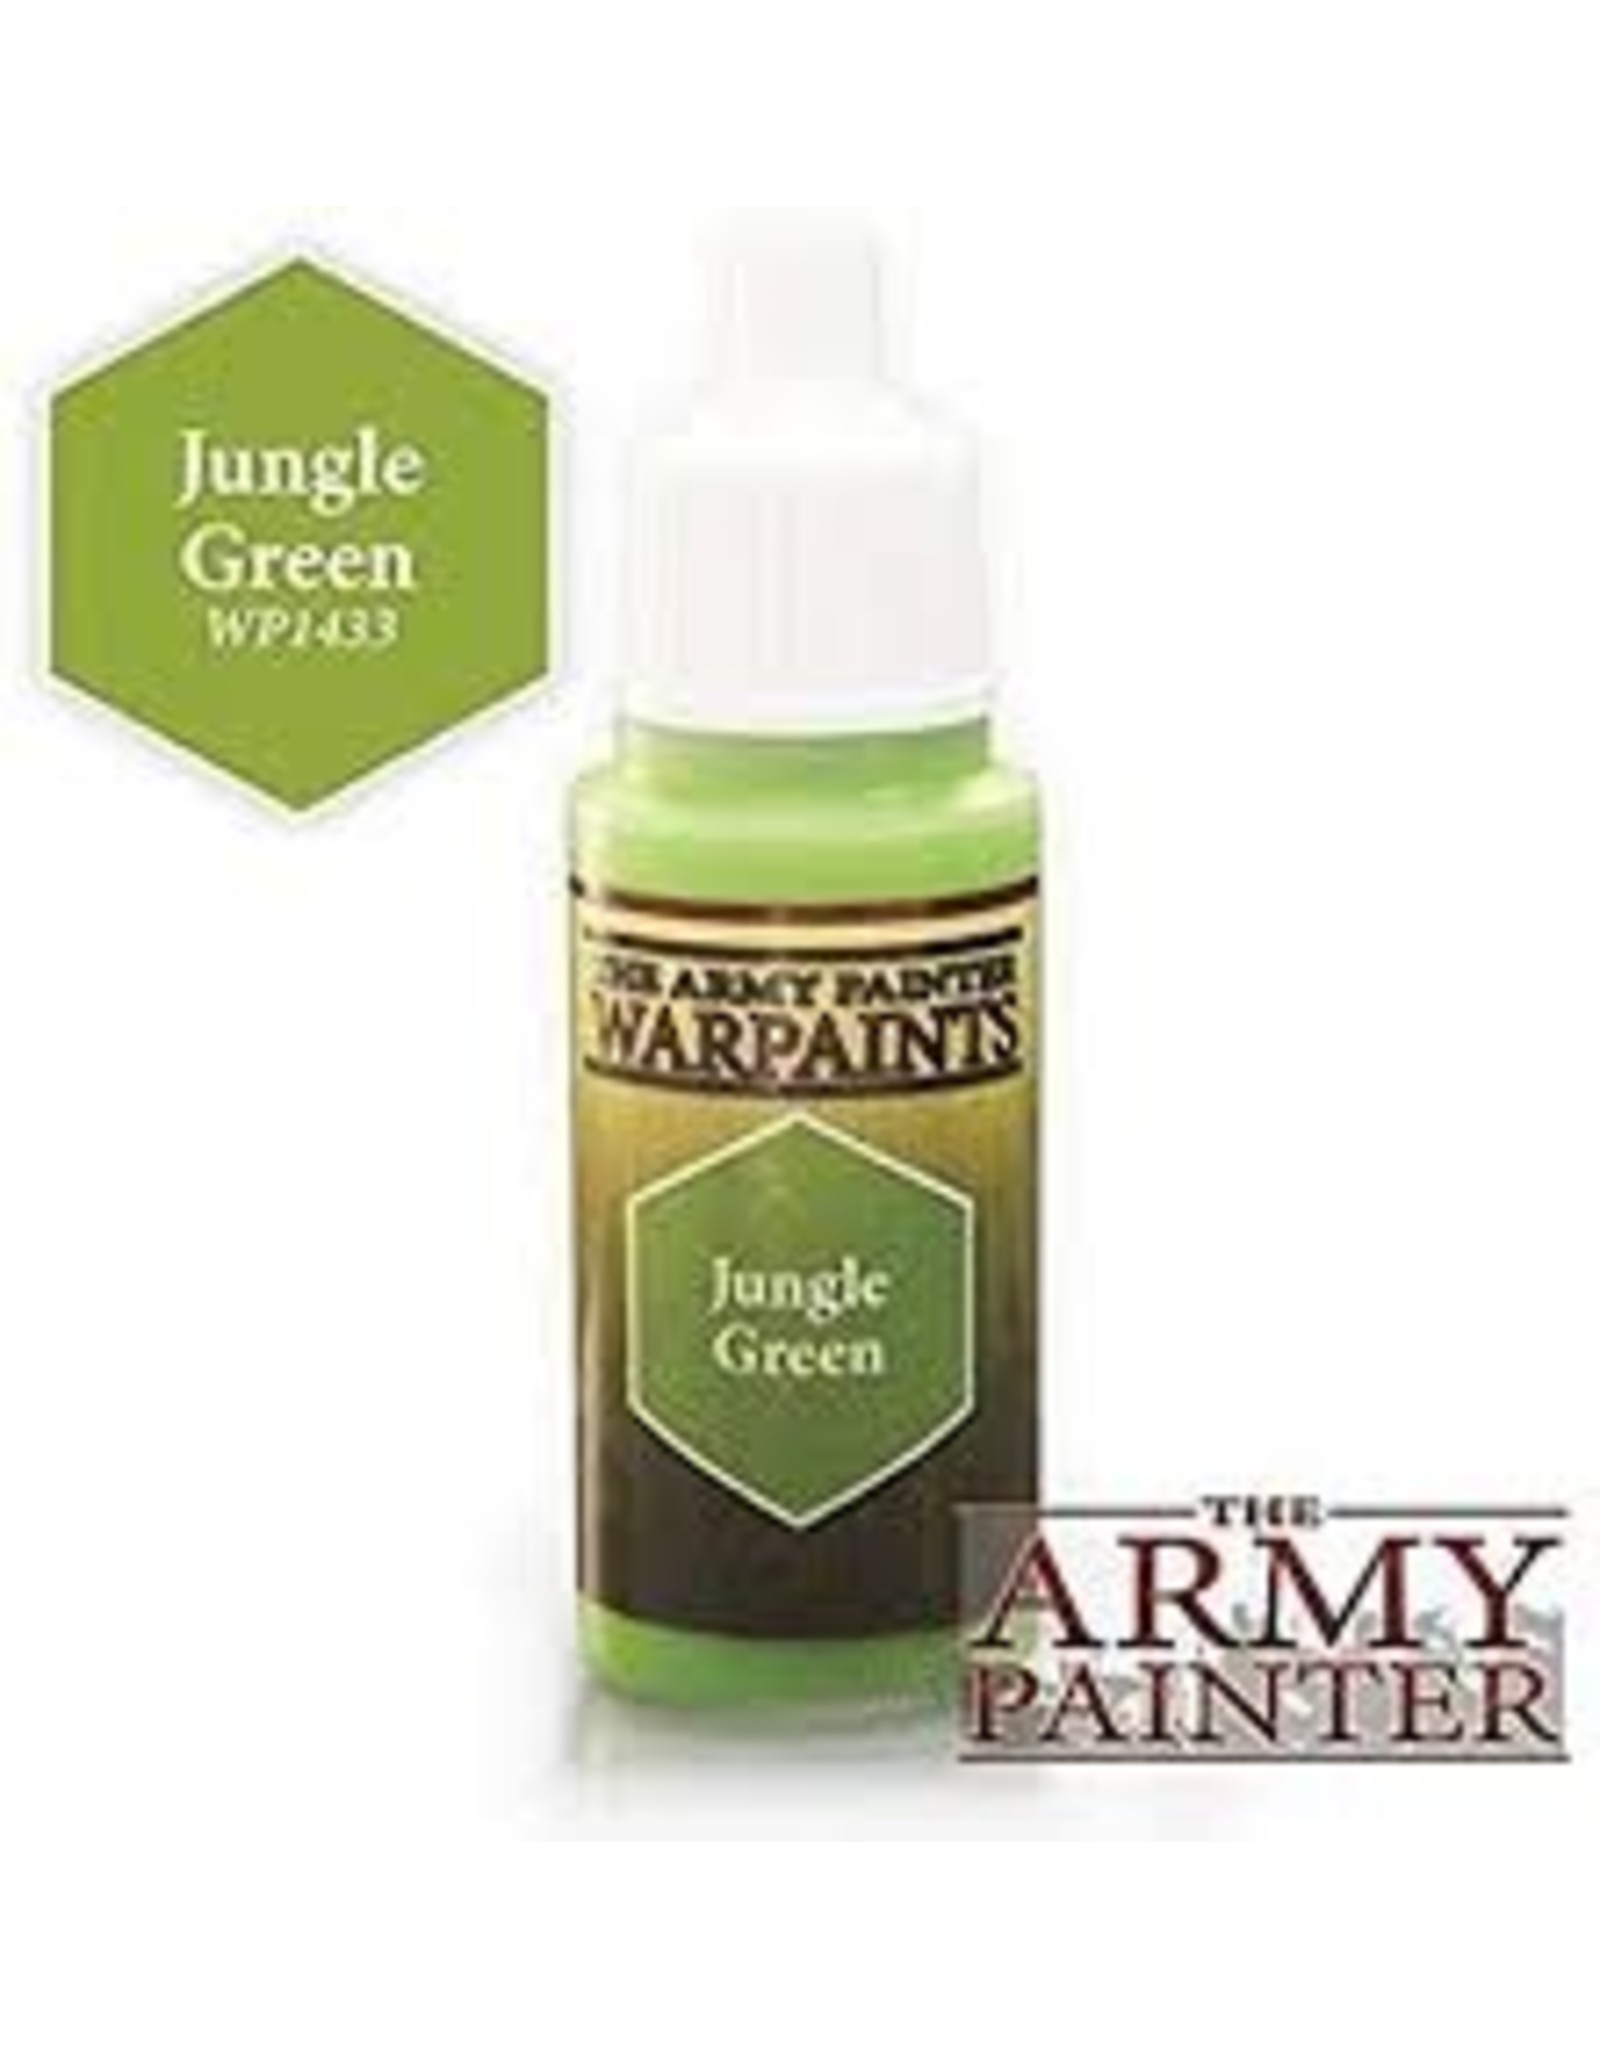 Army Painter Army Painter: Jungle Green